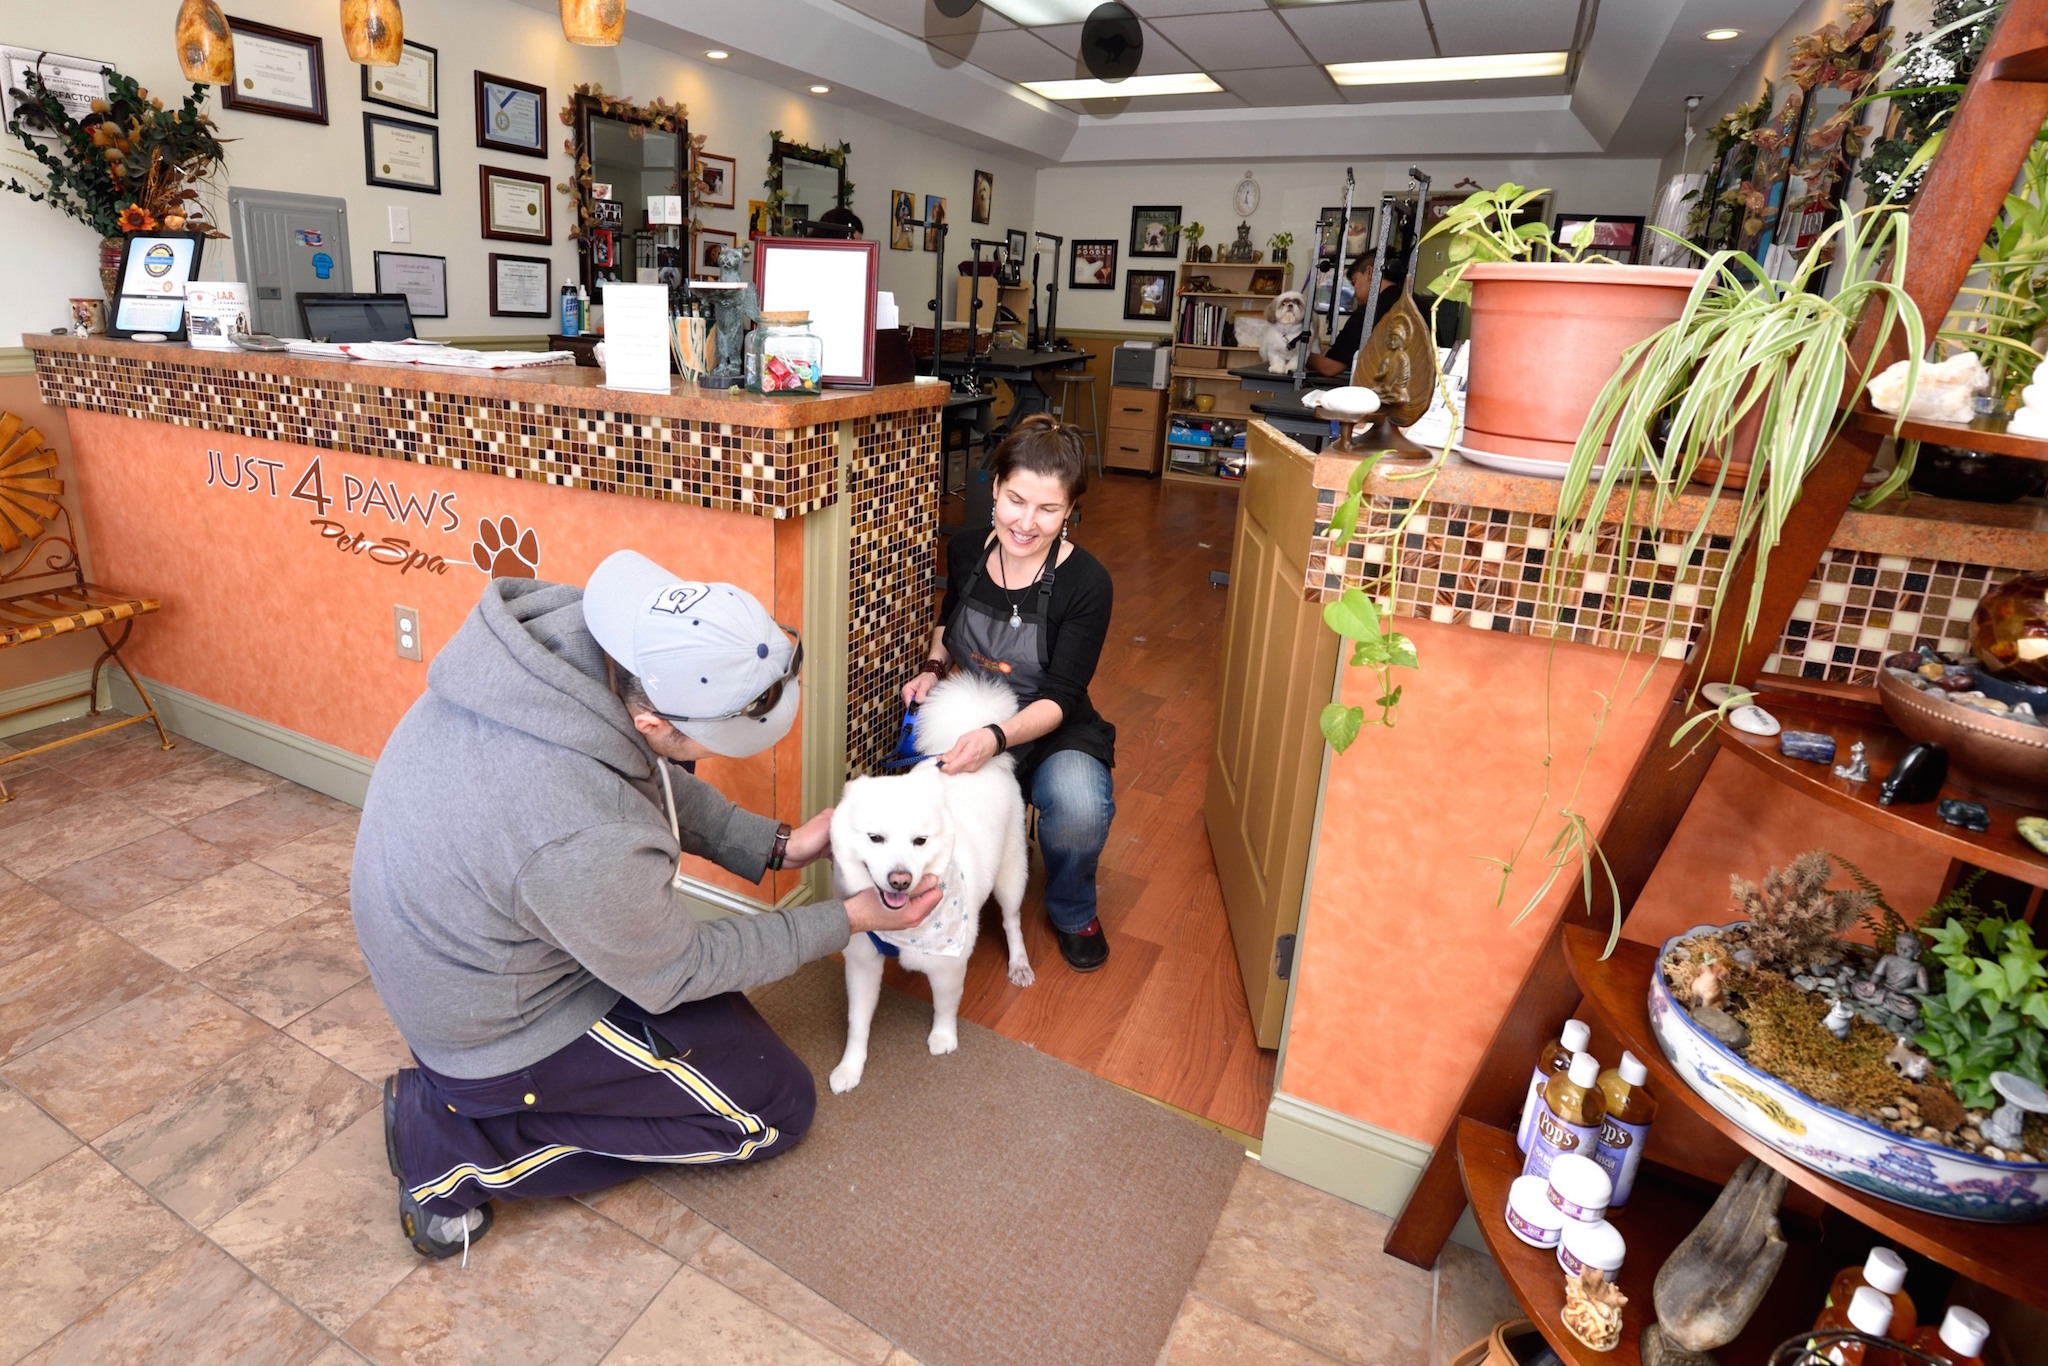 franchise opportunities just 4 paws pet spa